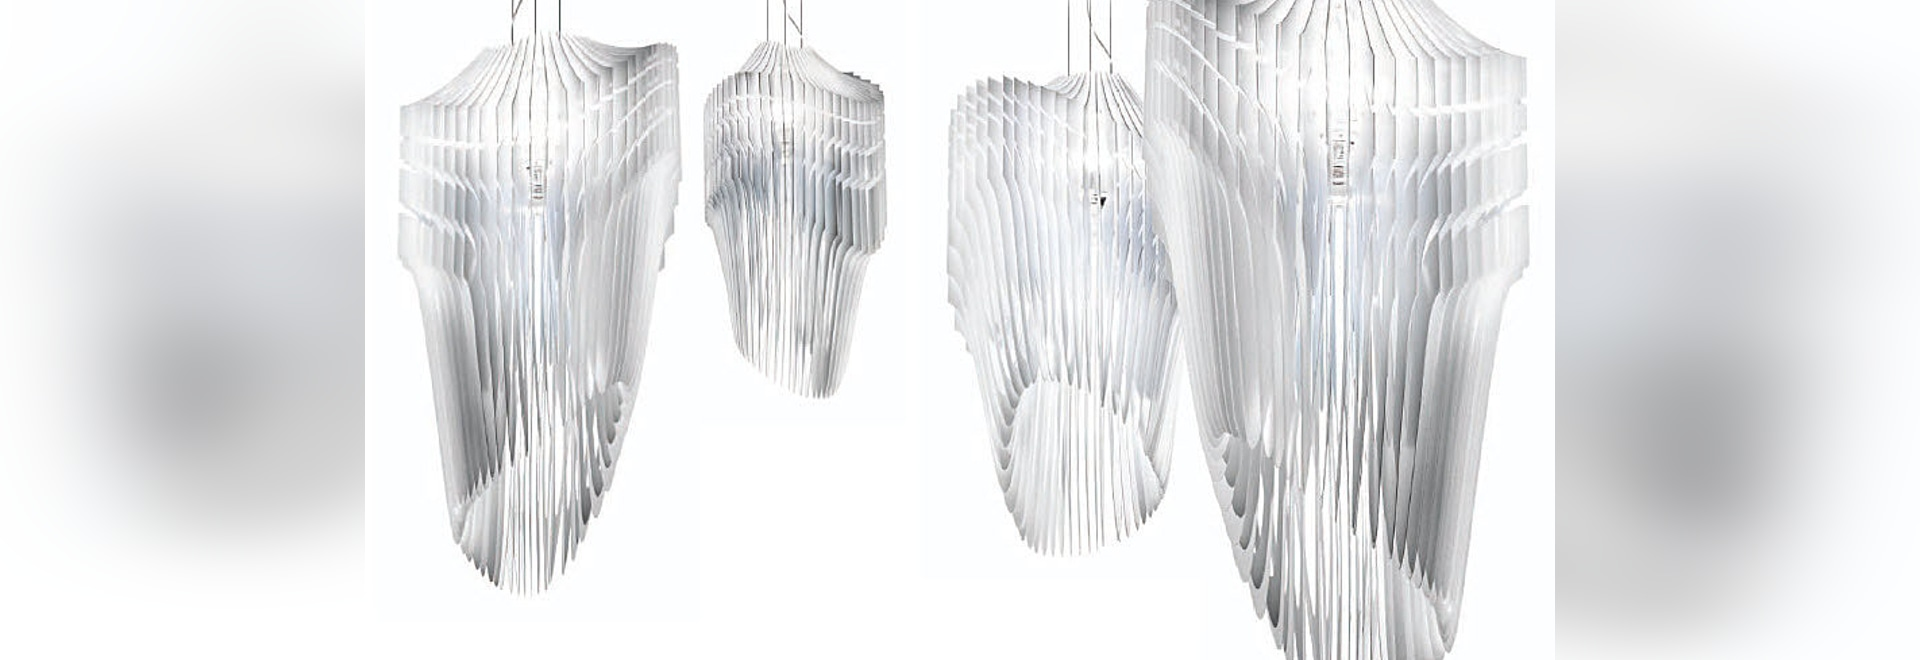 SLAMP: The Avia collection is shortlisted for the Compasso D''Oro.